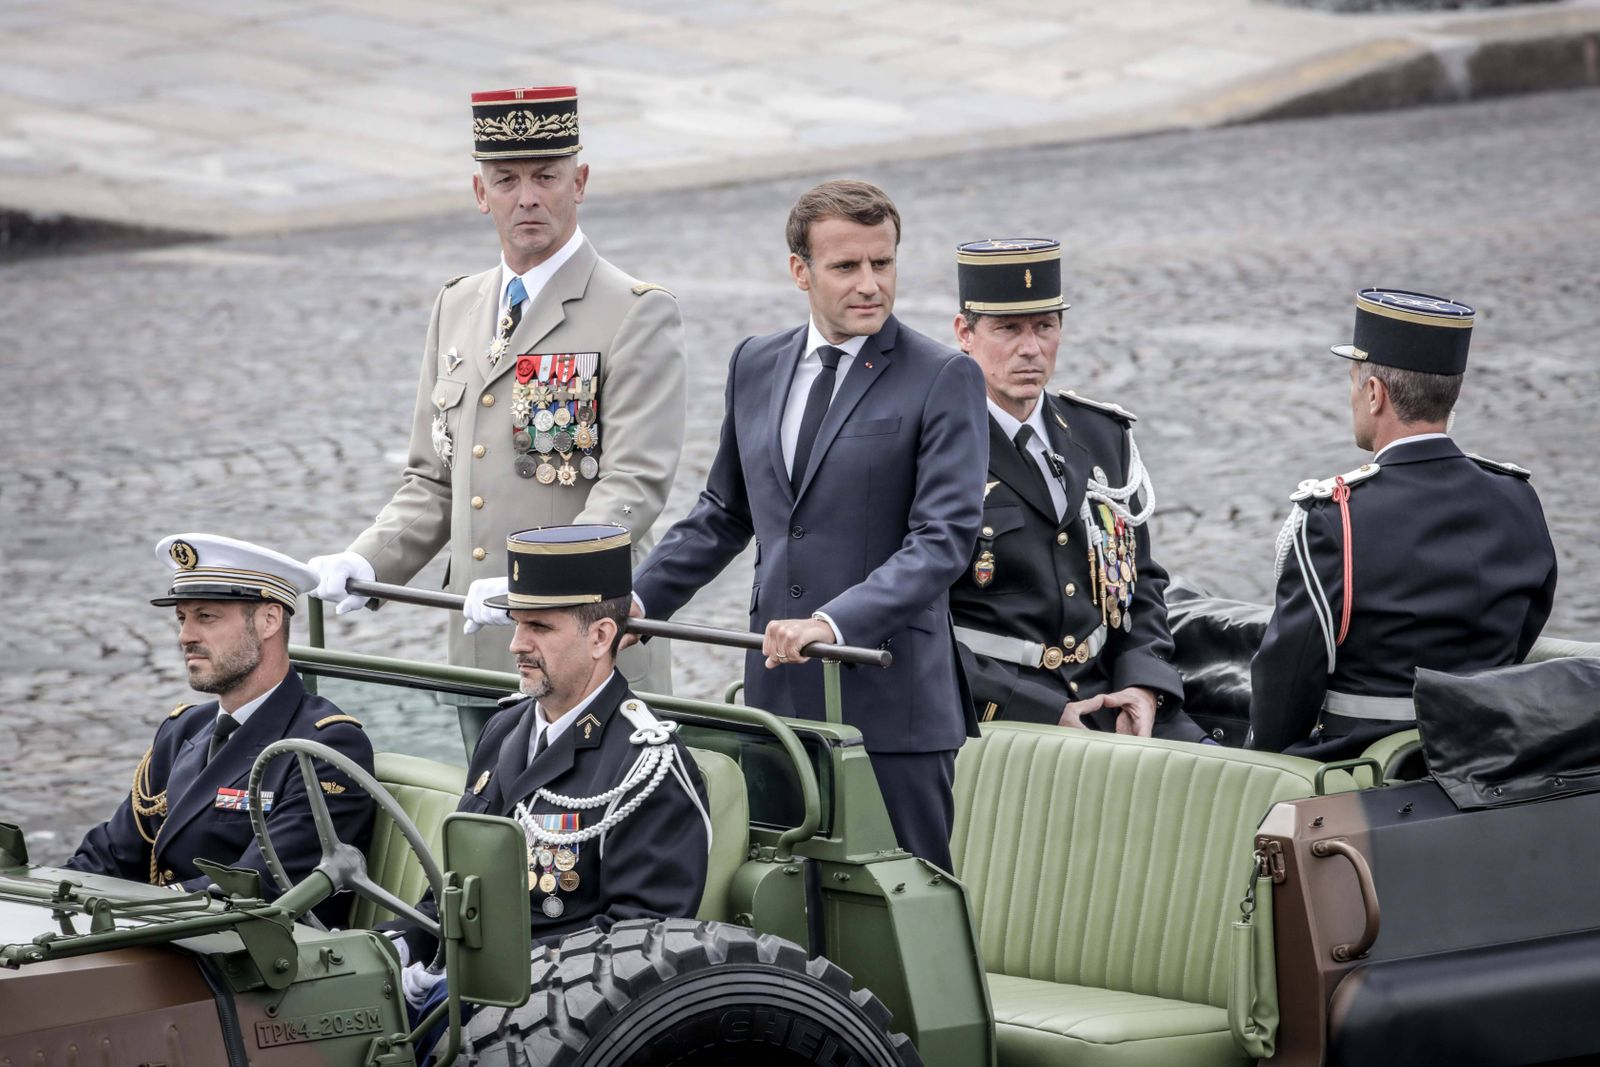 France s President Emmanuel Macron and French Armies Chief Staff General Francois Lecointre stand in the command car as